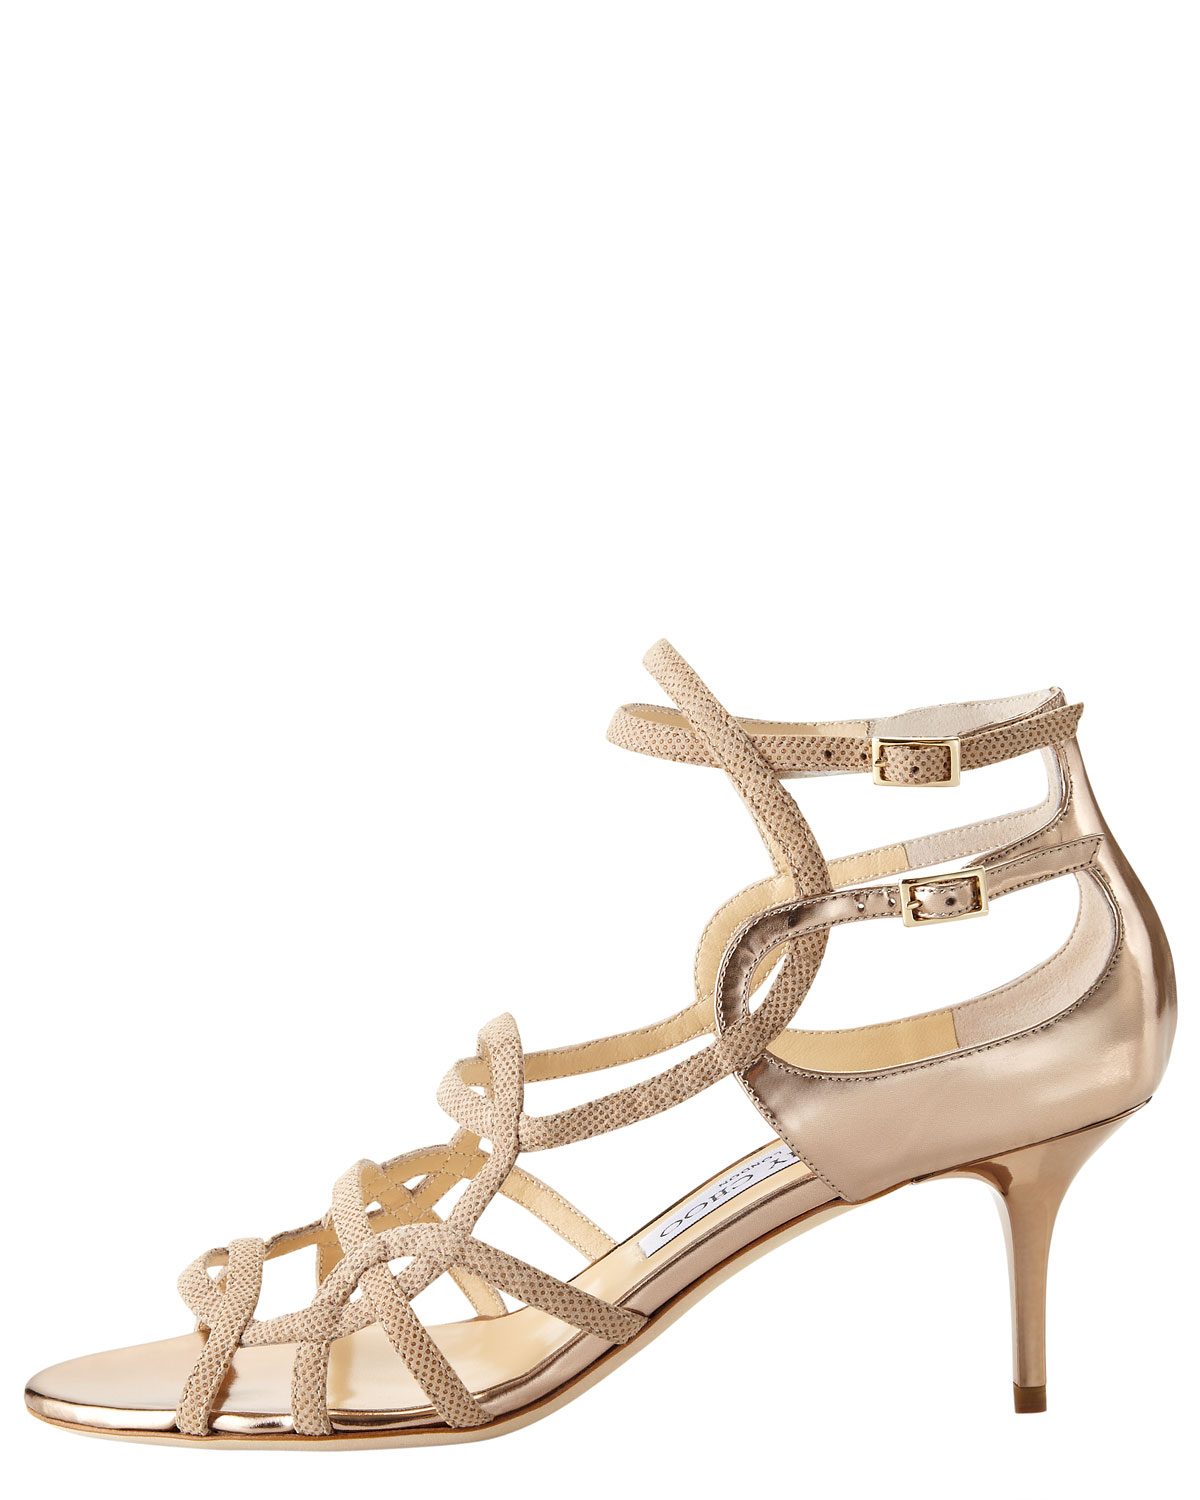 Jimmy choo Strappy Low-heel Sandal in Natural | Lyst